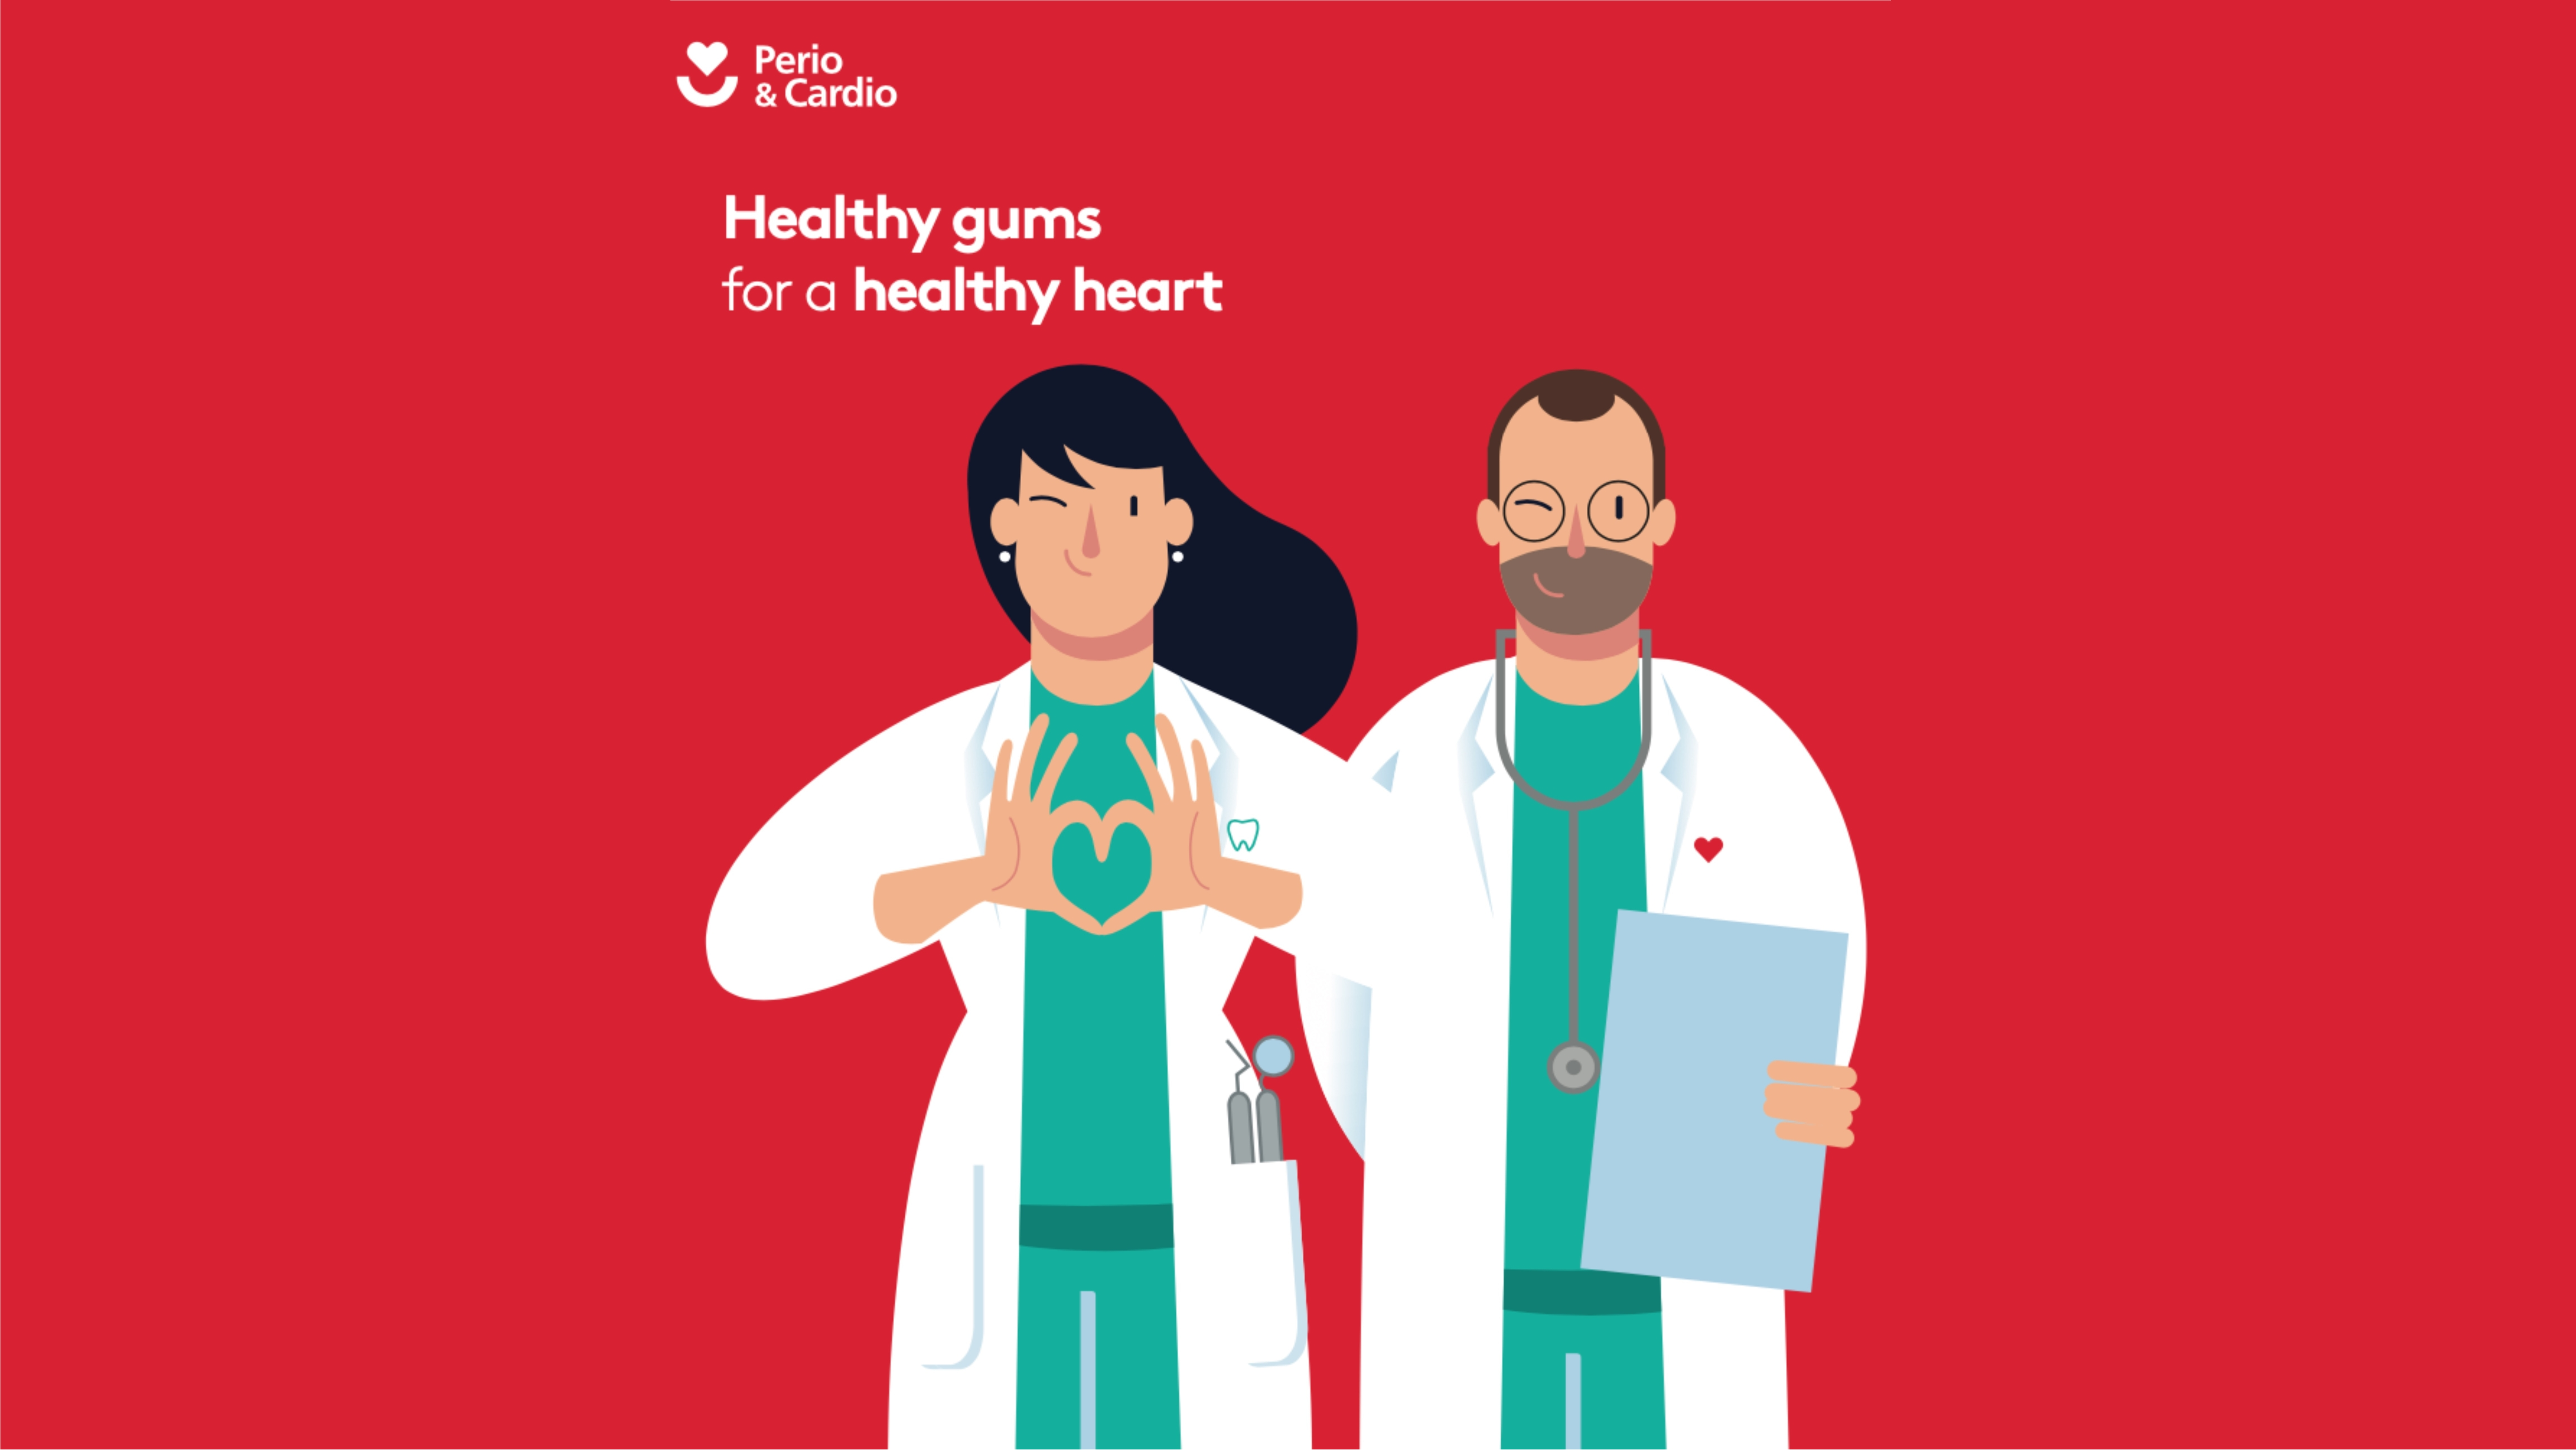 Campaign highlights links between periodontal and cardiovascular diseases